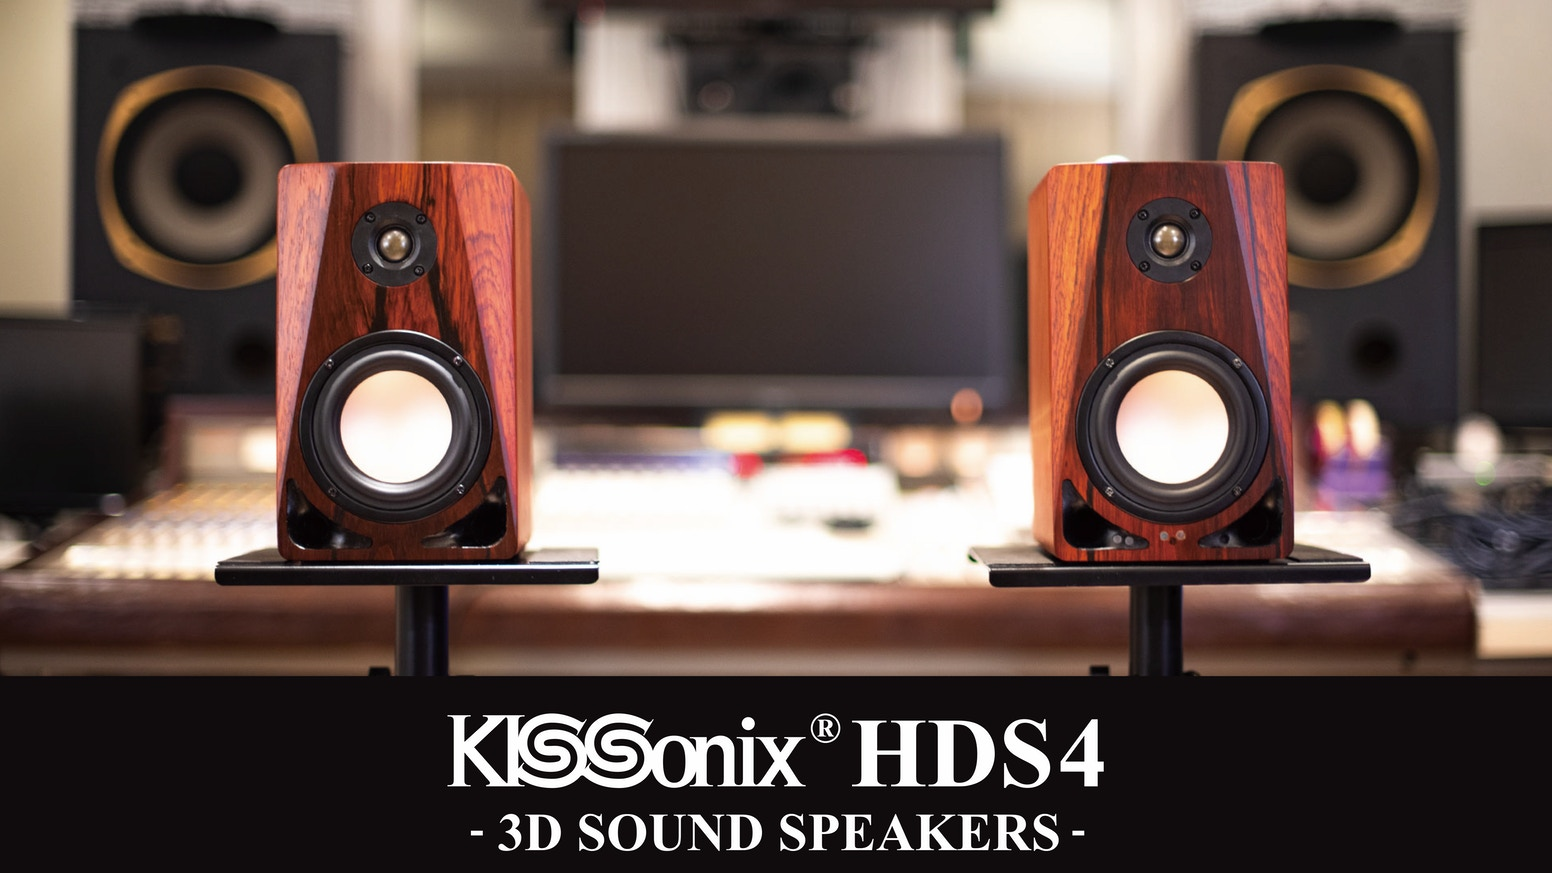 "The world's first HDMI-Compatible 3D Sound Active Speakers equipped with ""KISSonix HDFX"", the innovative 3D sound technology."